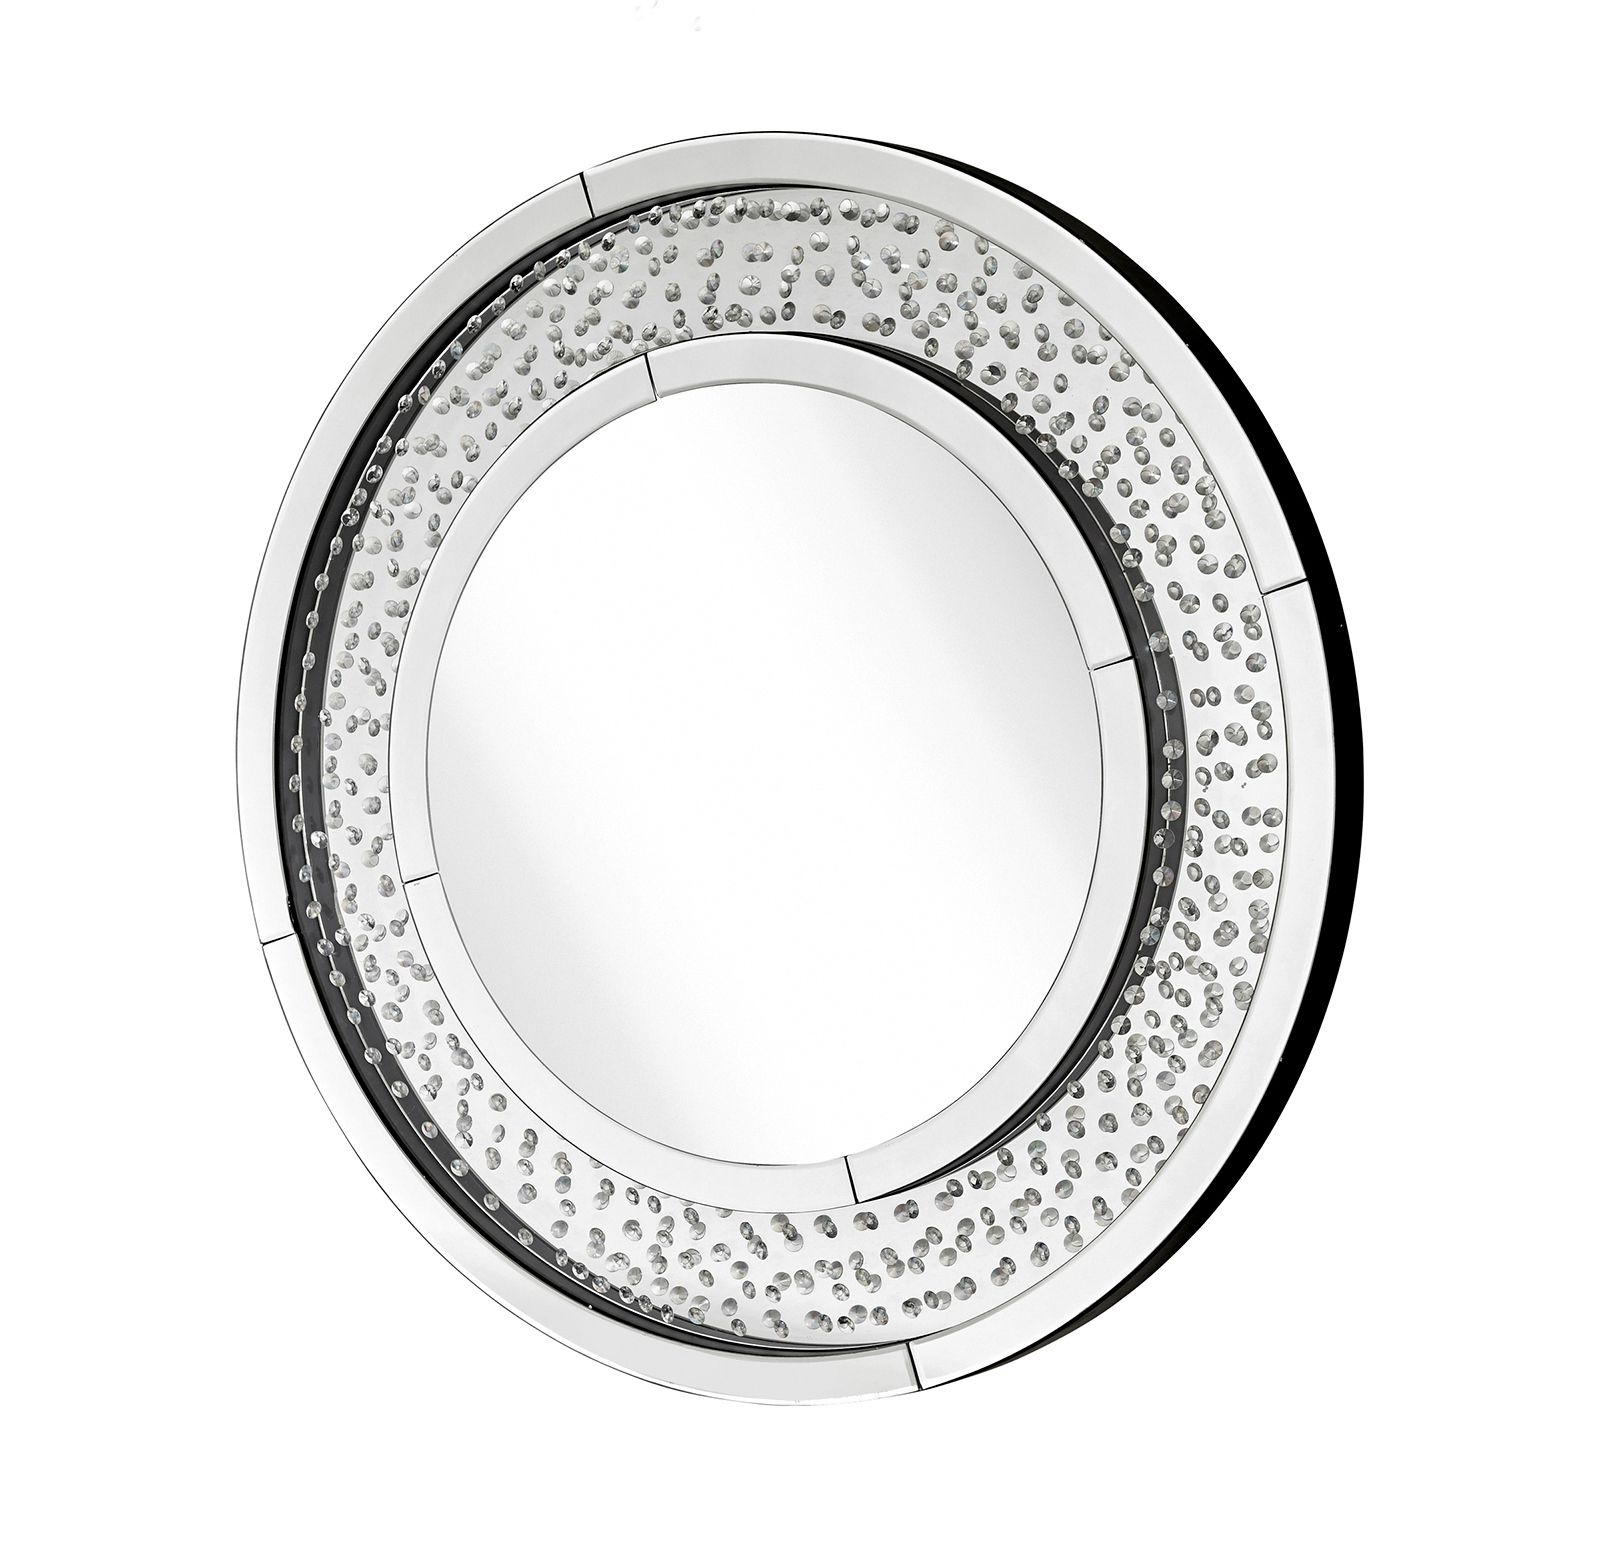 Floating Crystal – Floating Crystal Wall Mirror Inside Best And Newest Wall Mirrors With Crystals (Gallery 11 of 20)